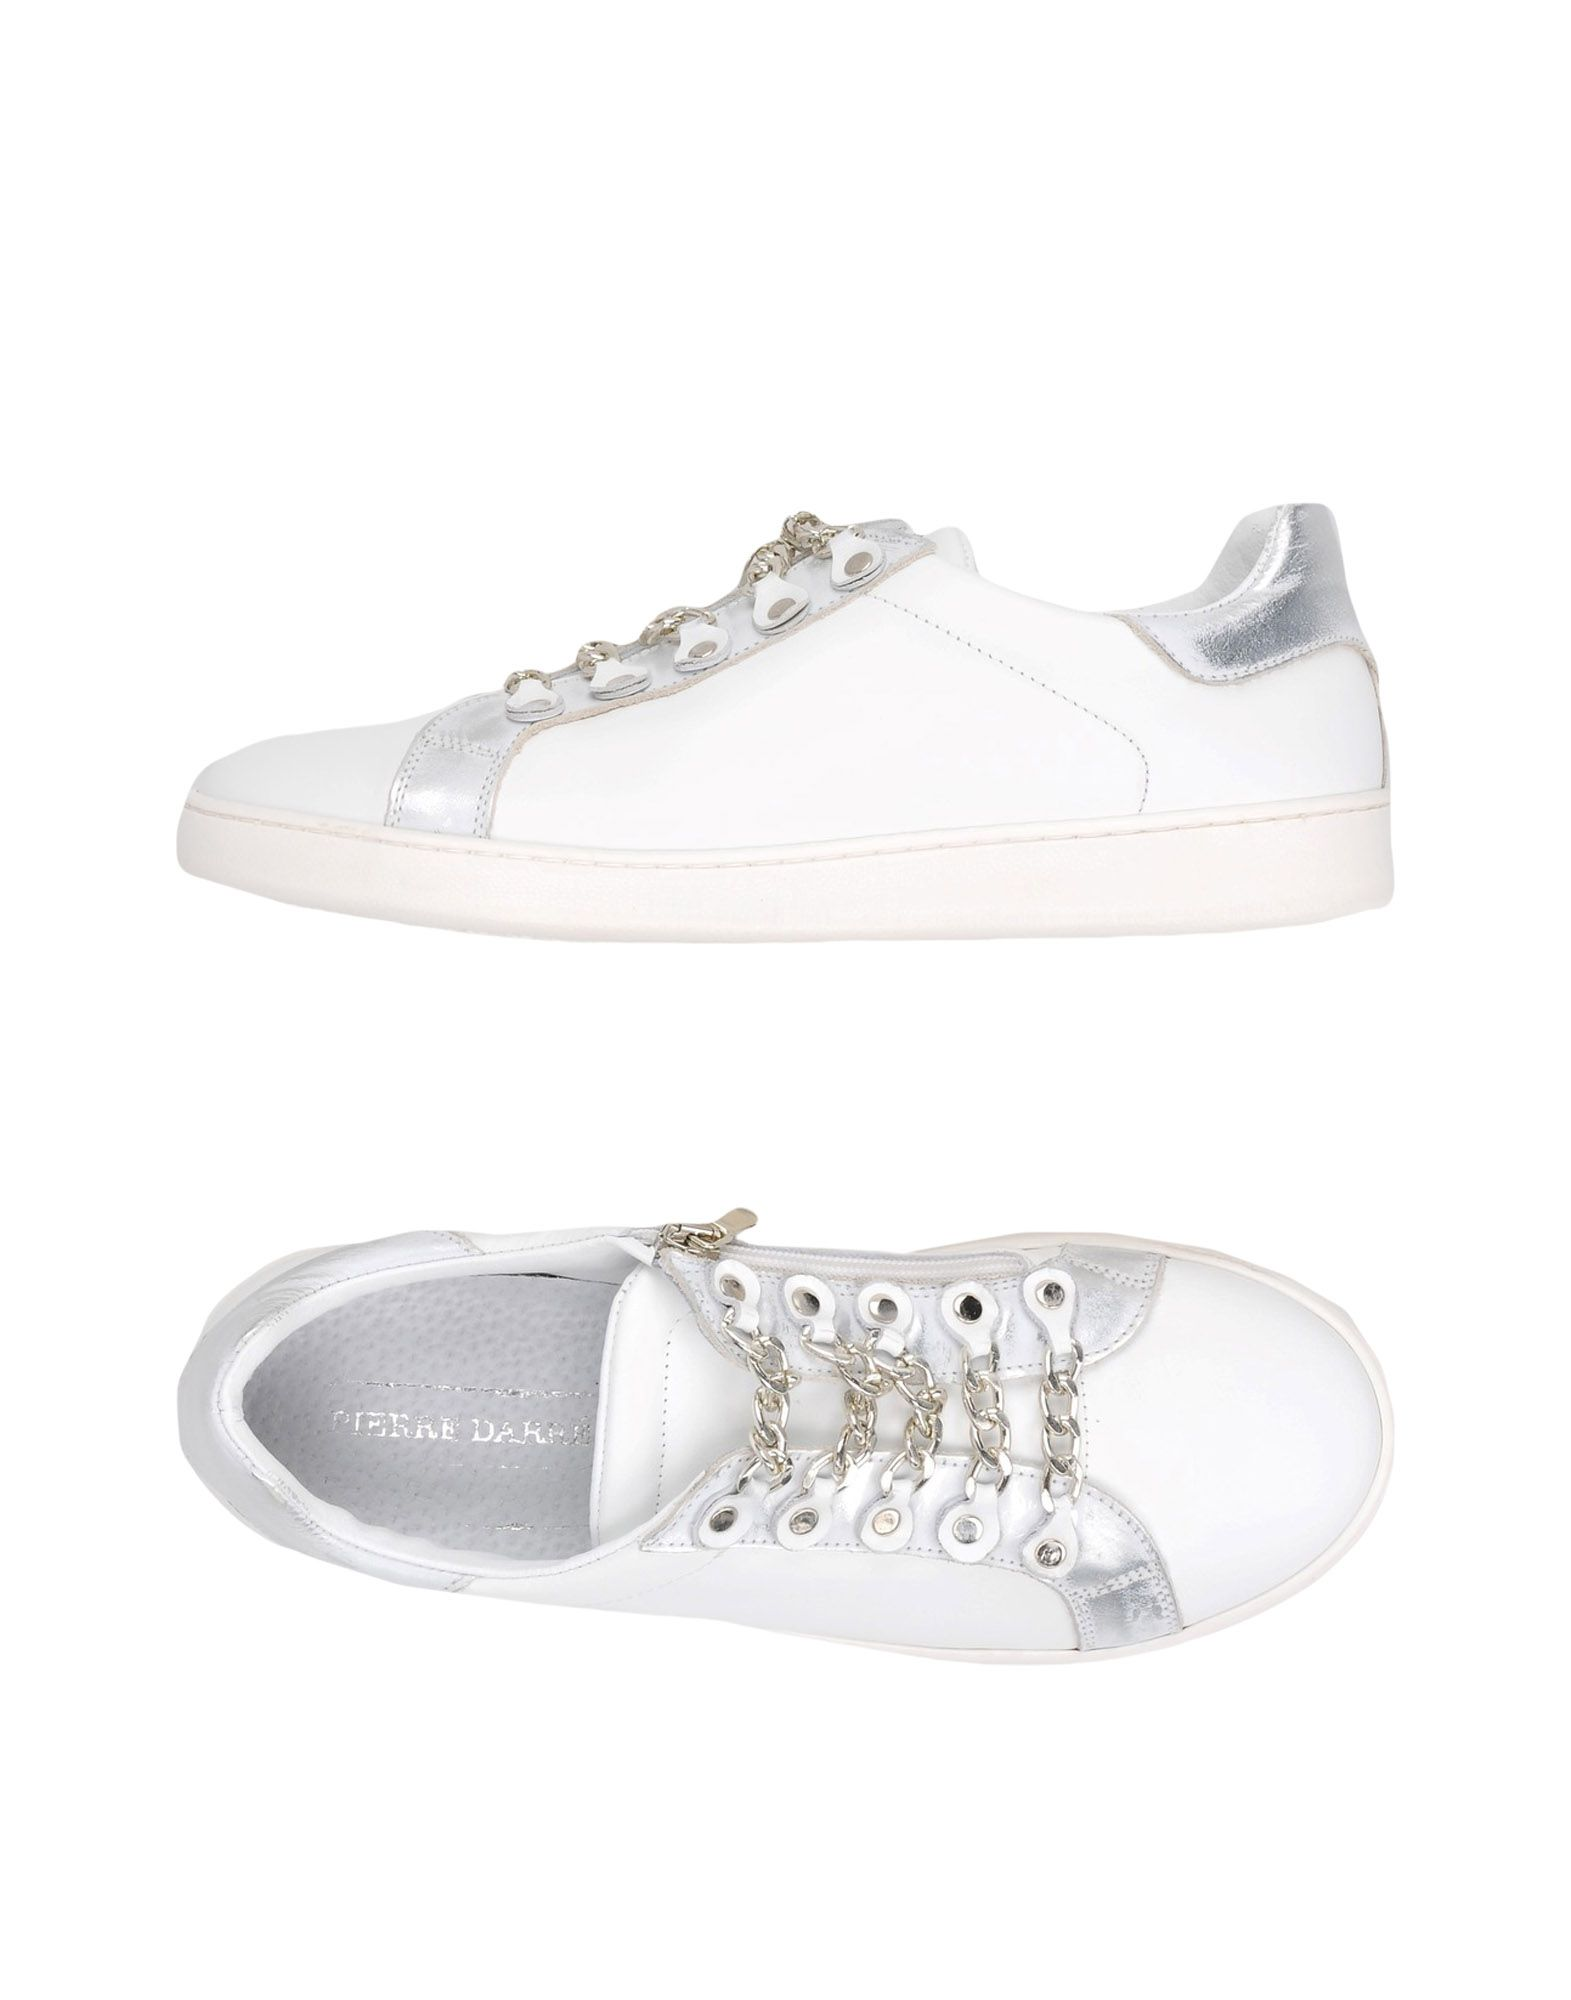 Sneakers Pierre Darré Donna - 11430143OA